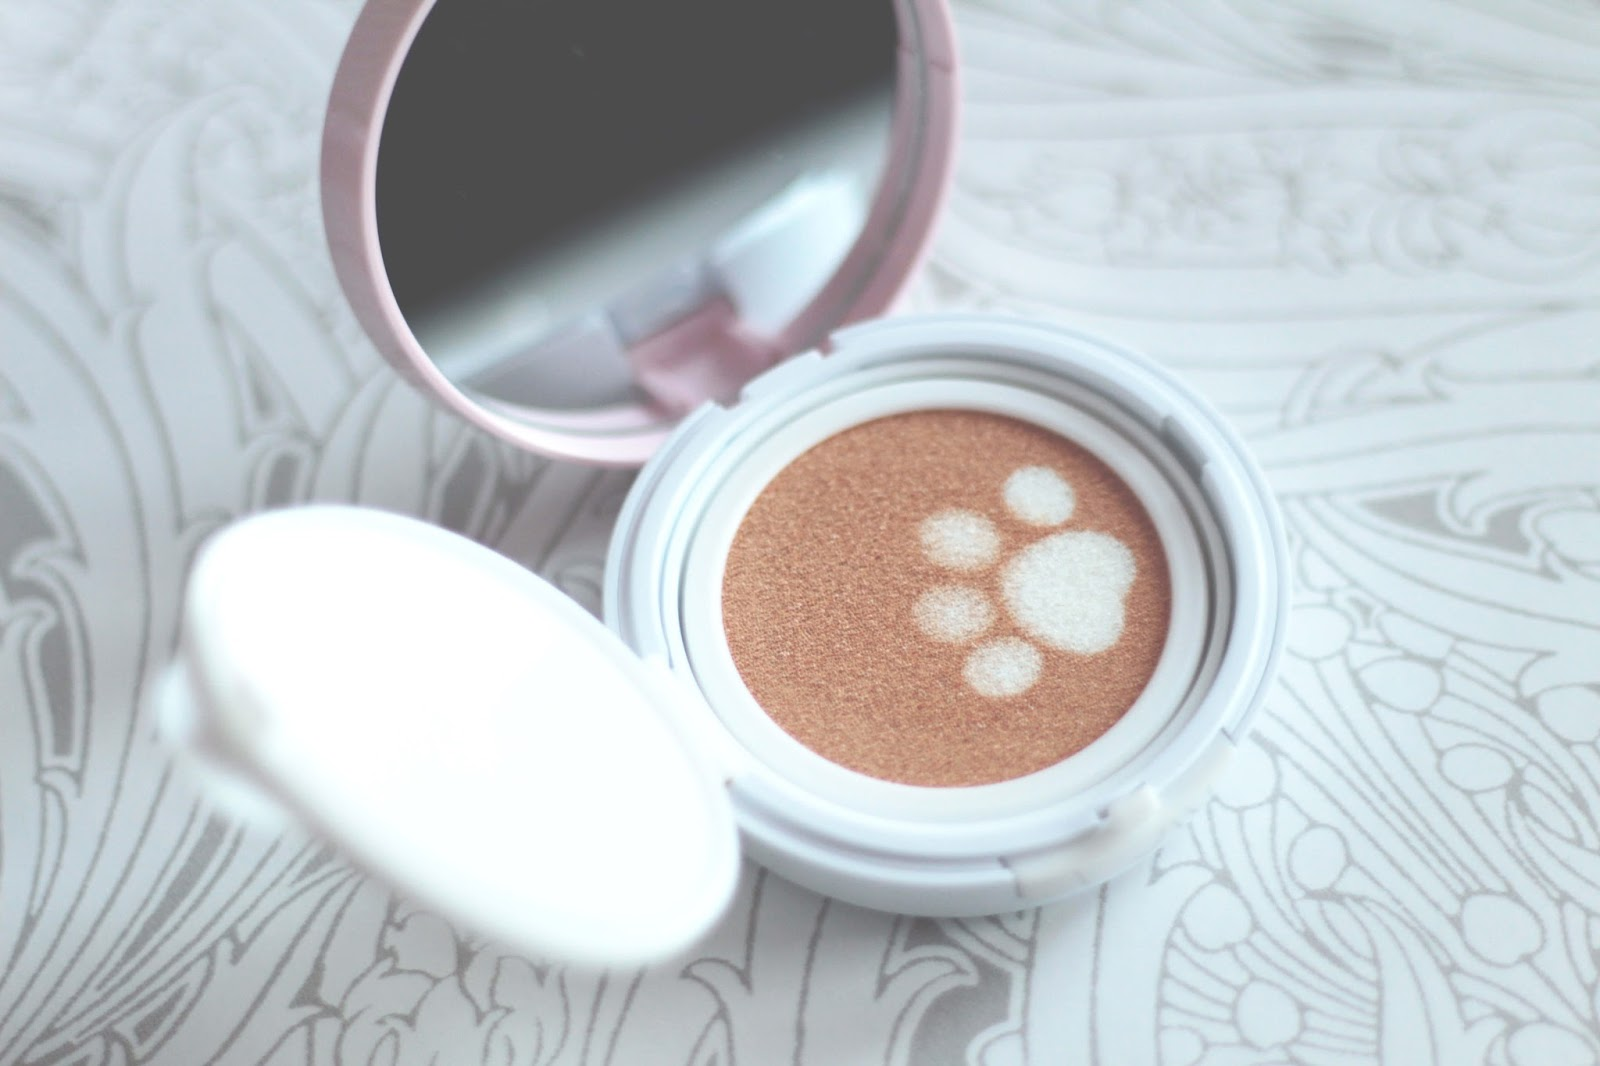 holika holika face2change dodocat glow cushion bb review product shot